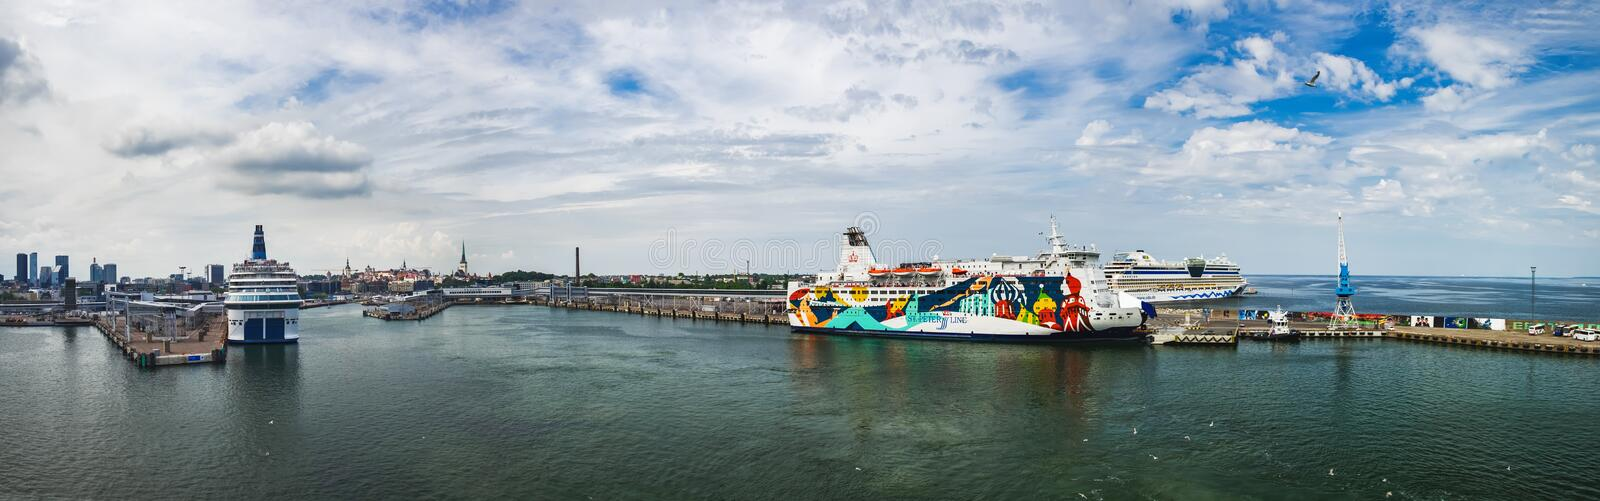 View of Tallinn harbor from the sea, Estonia. Tallinn, Estonia - July 24, 2018: View of Tallinn harbor from the sea in summer, Estonia. Tallink cruise ferry and stock images